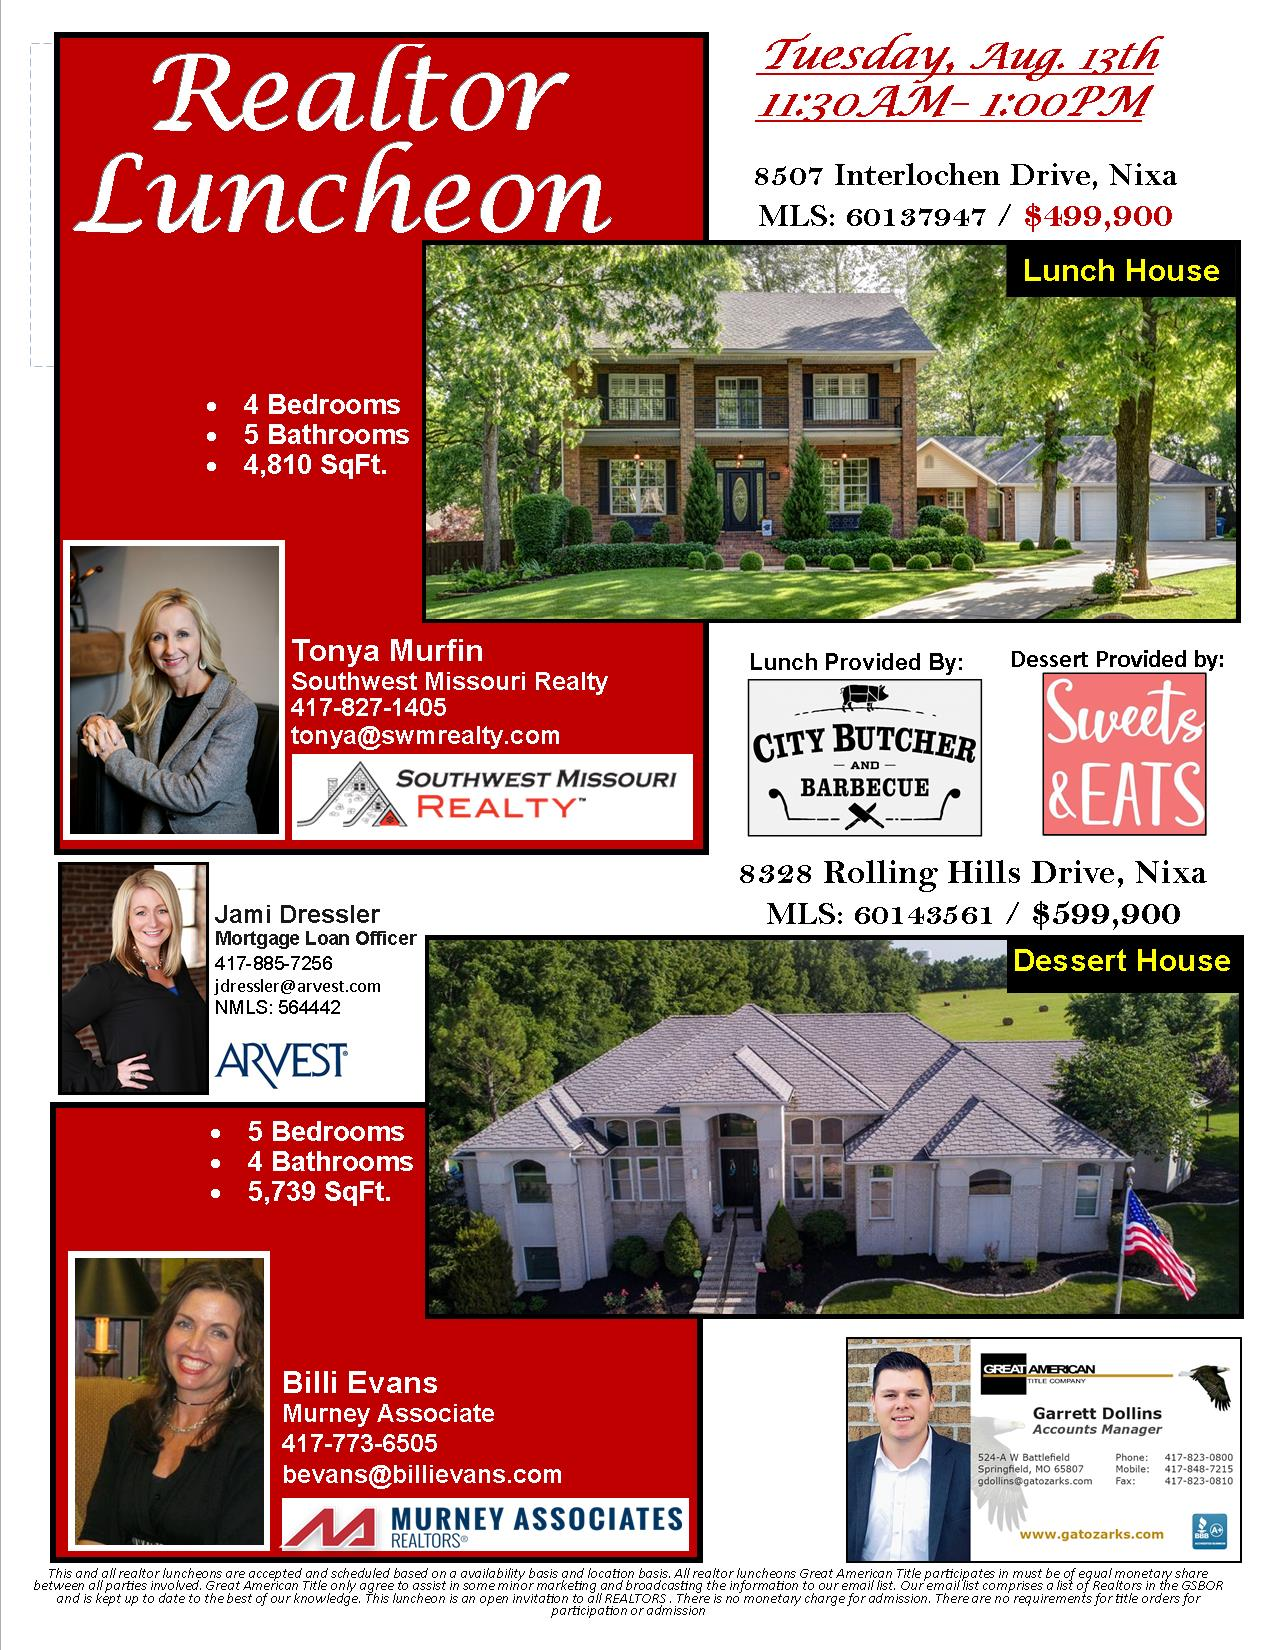 Come Check it out! Nixa Realtor Luncheon! Tuesday August